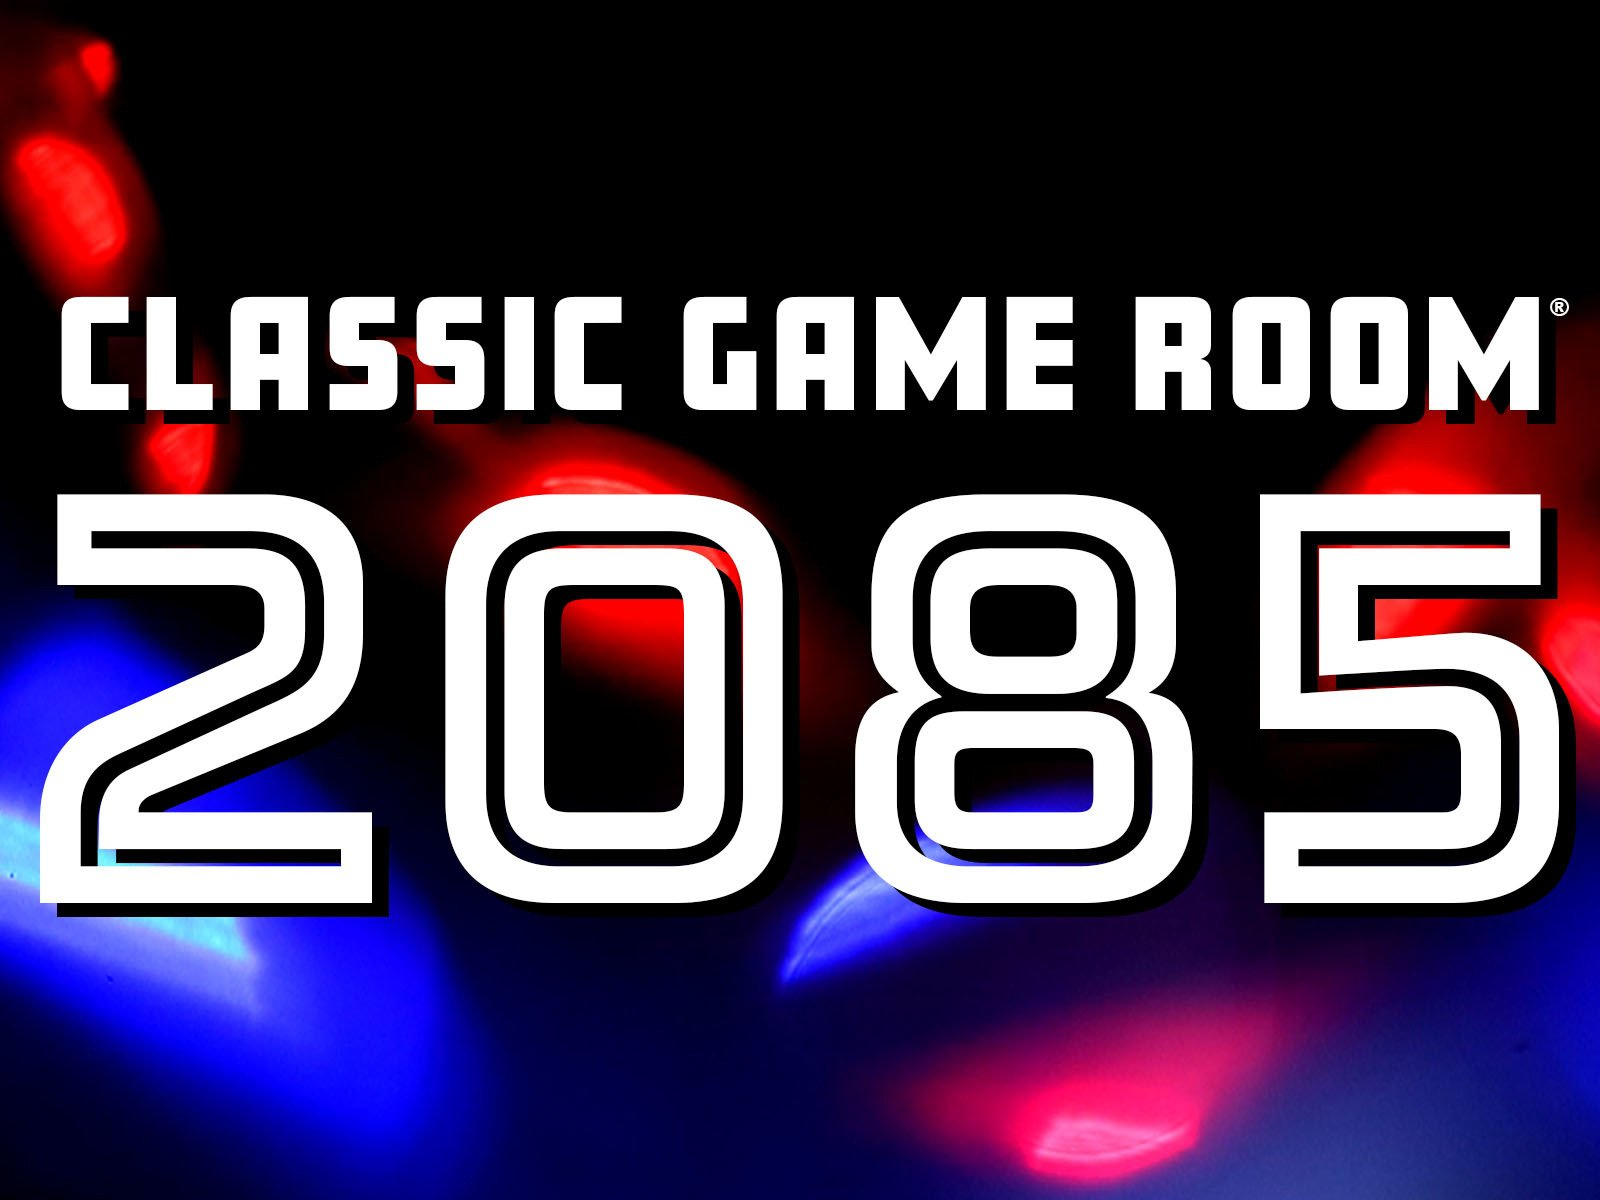 amazon com classic game room 2085 mark bussler